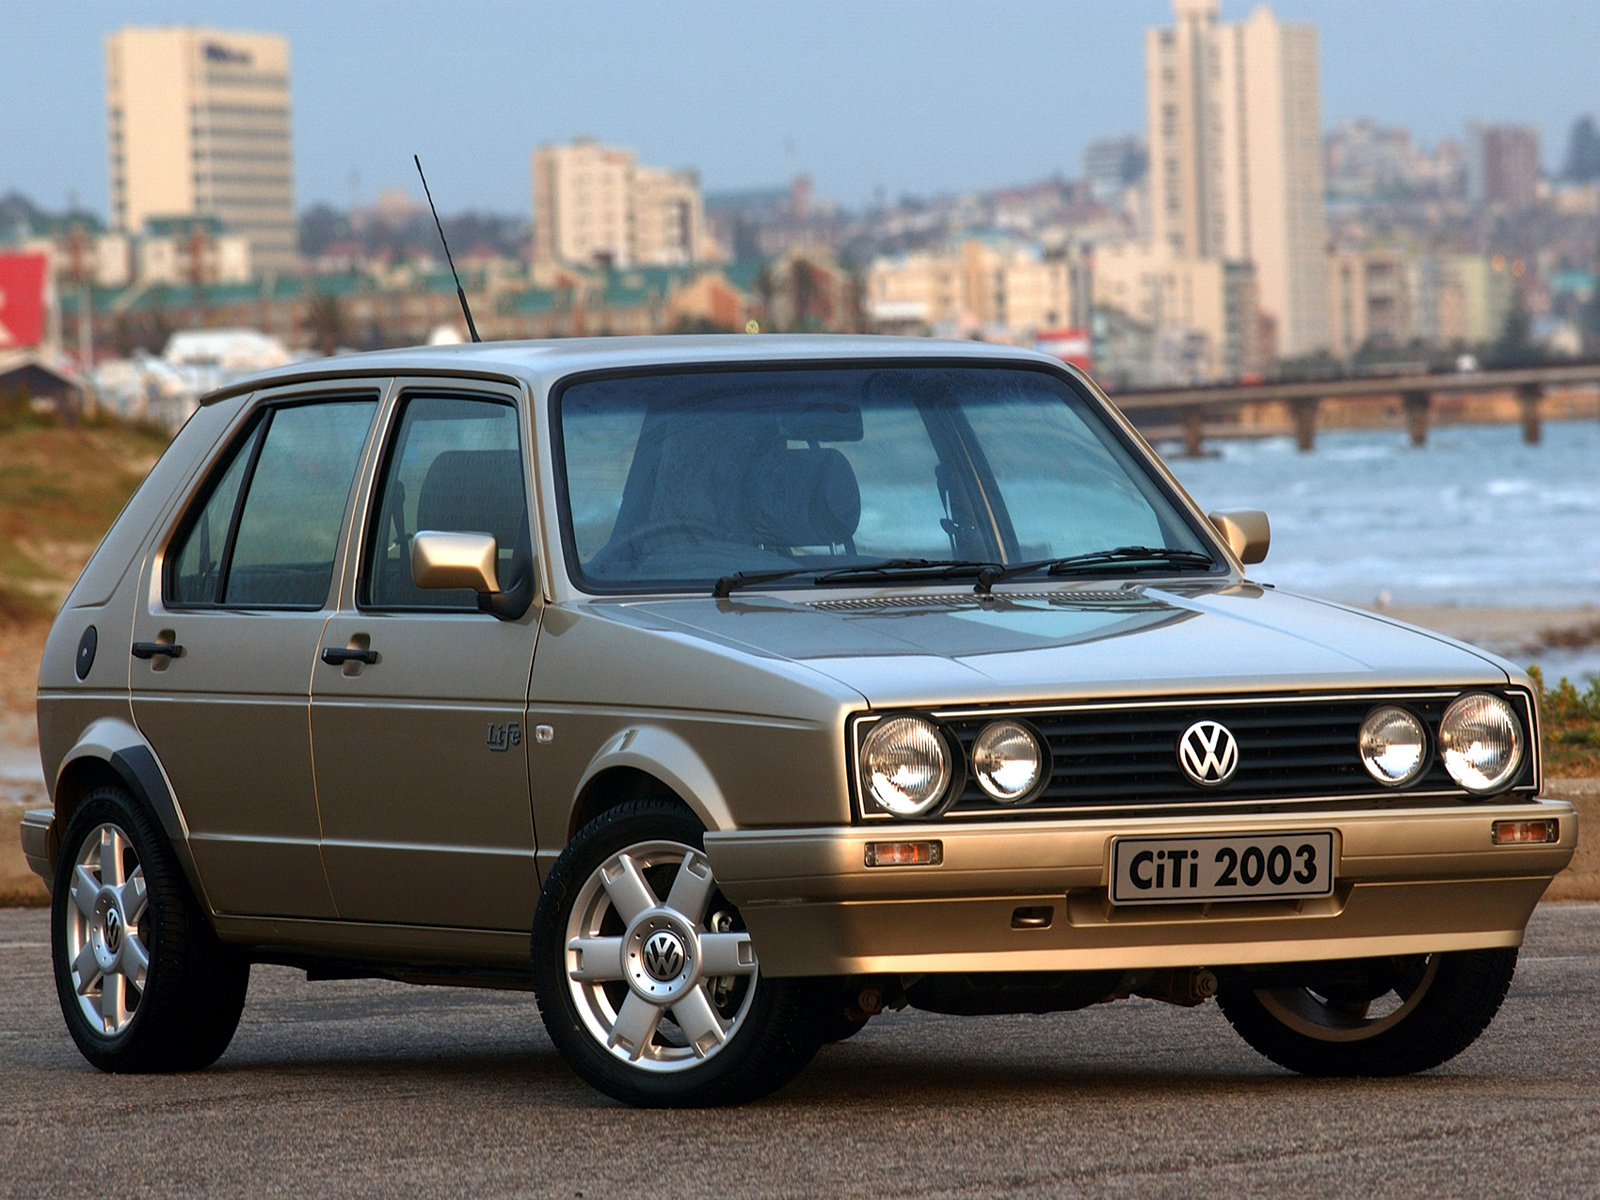 Volkswagen citi photo - 5